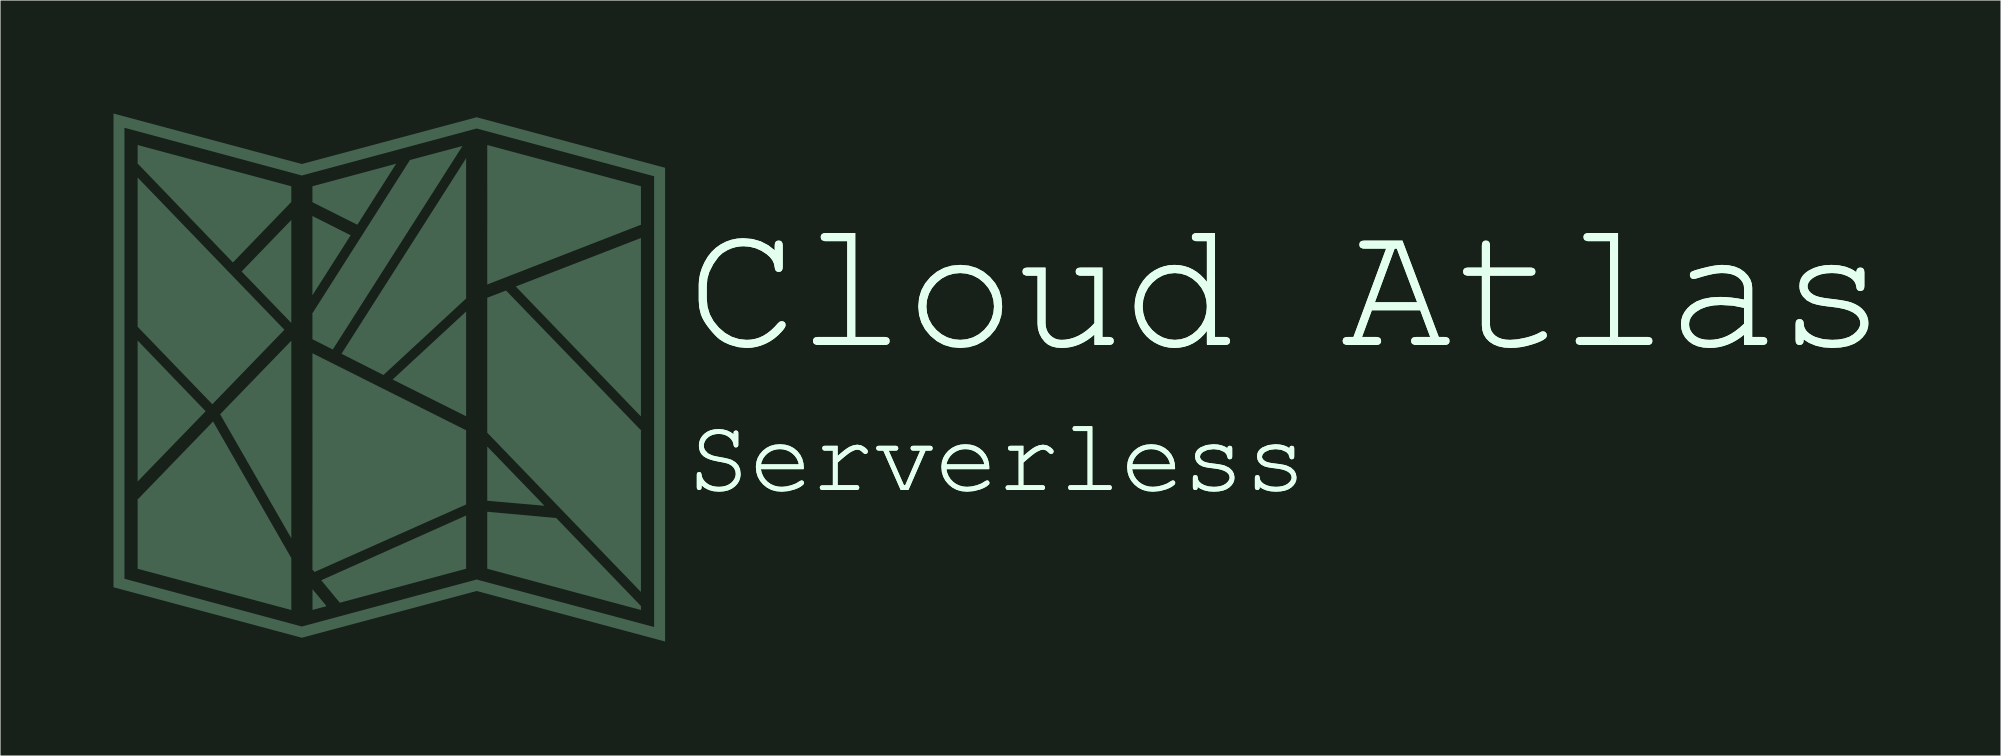 "Title image ""Cloud Atlas. Serverless"". Showing the outline of a paper map."